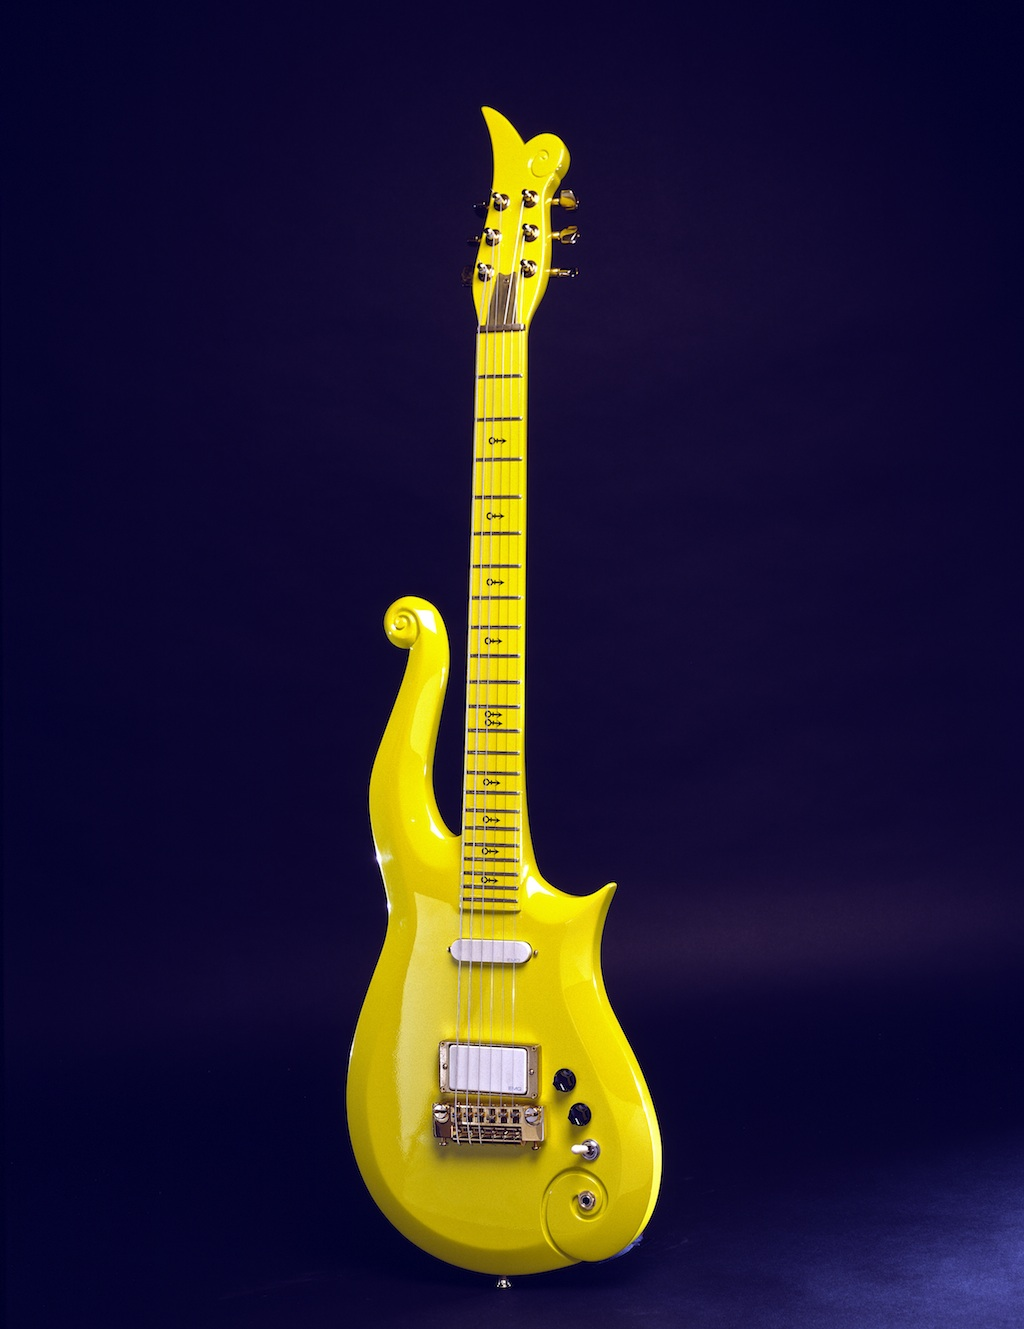 This Prince Guitar Is Now On Display At The National